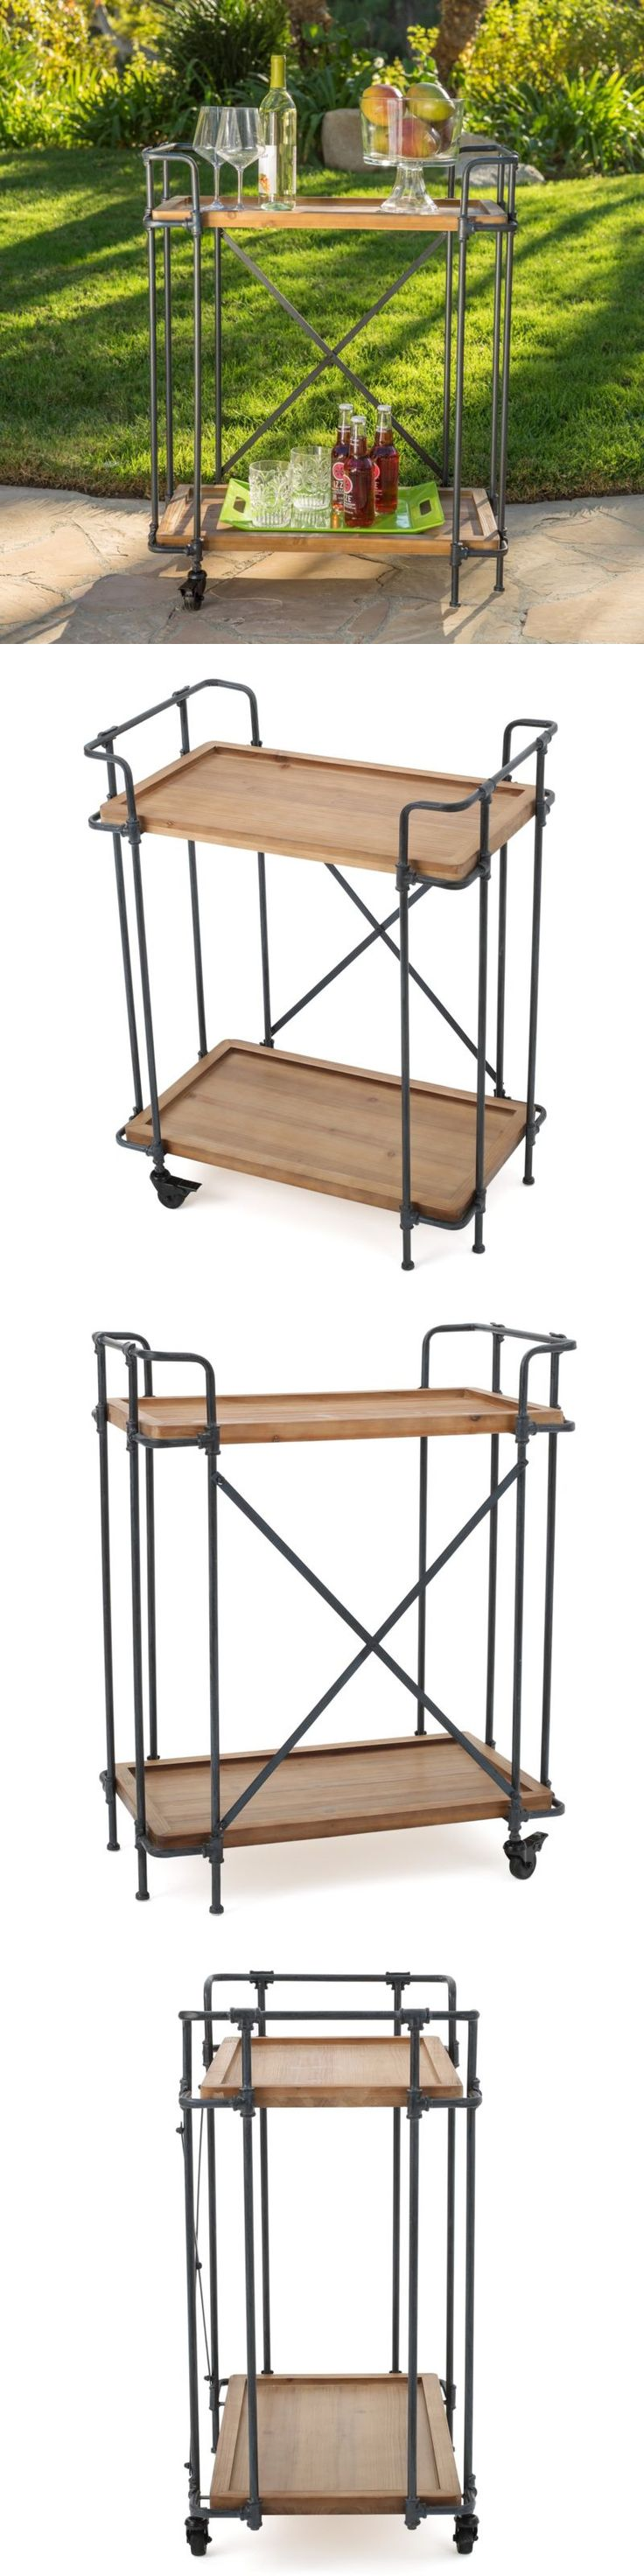 Outdoor buffet table serving cart as well century modern console table - Bar Carts And Serving Carts 183320 Bar Cart Industrial Style Rustic Iron Dorm Kitchen Furniture